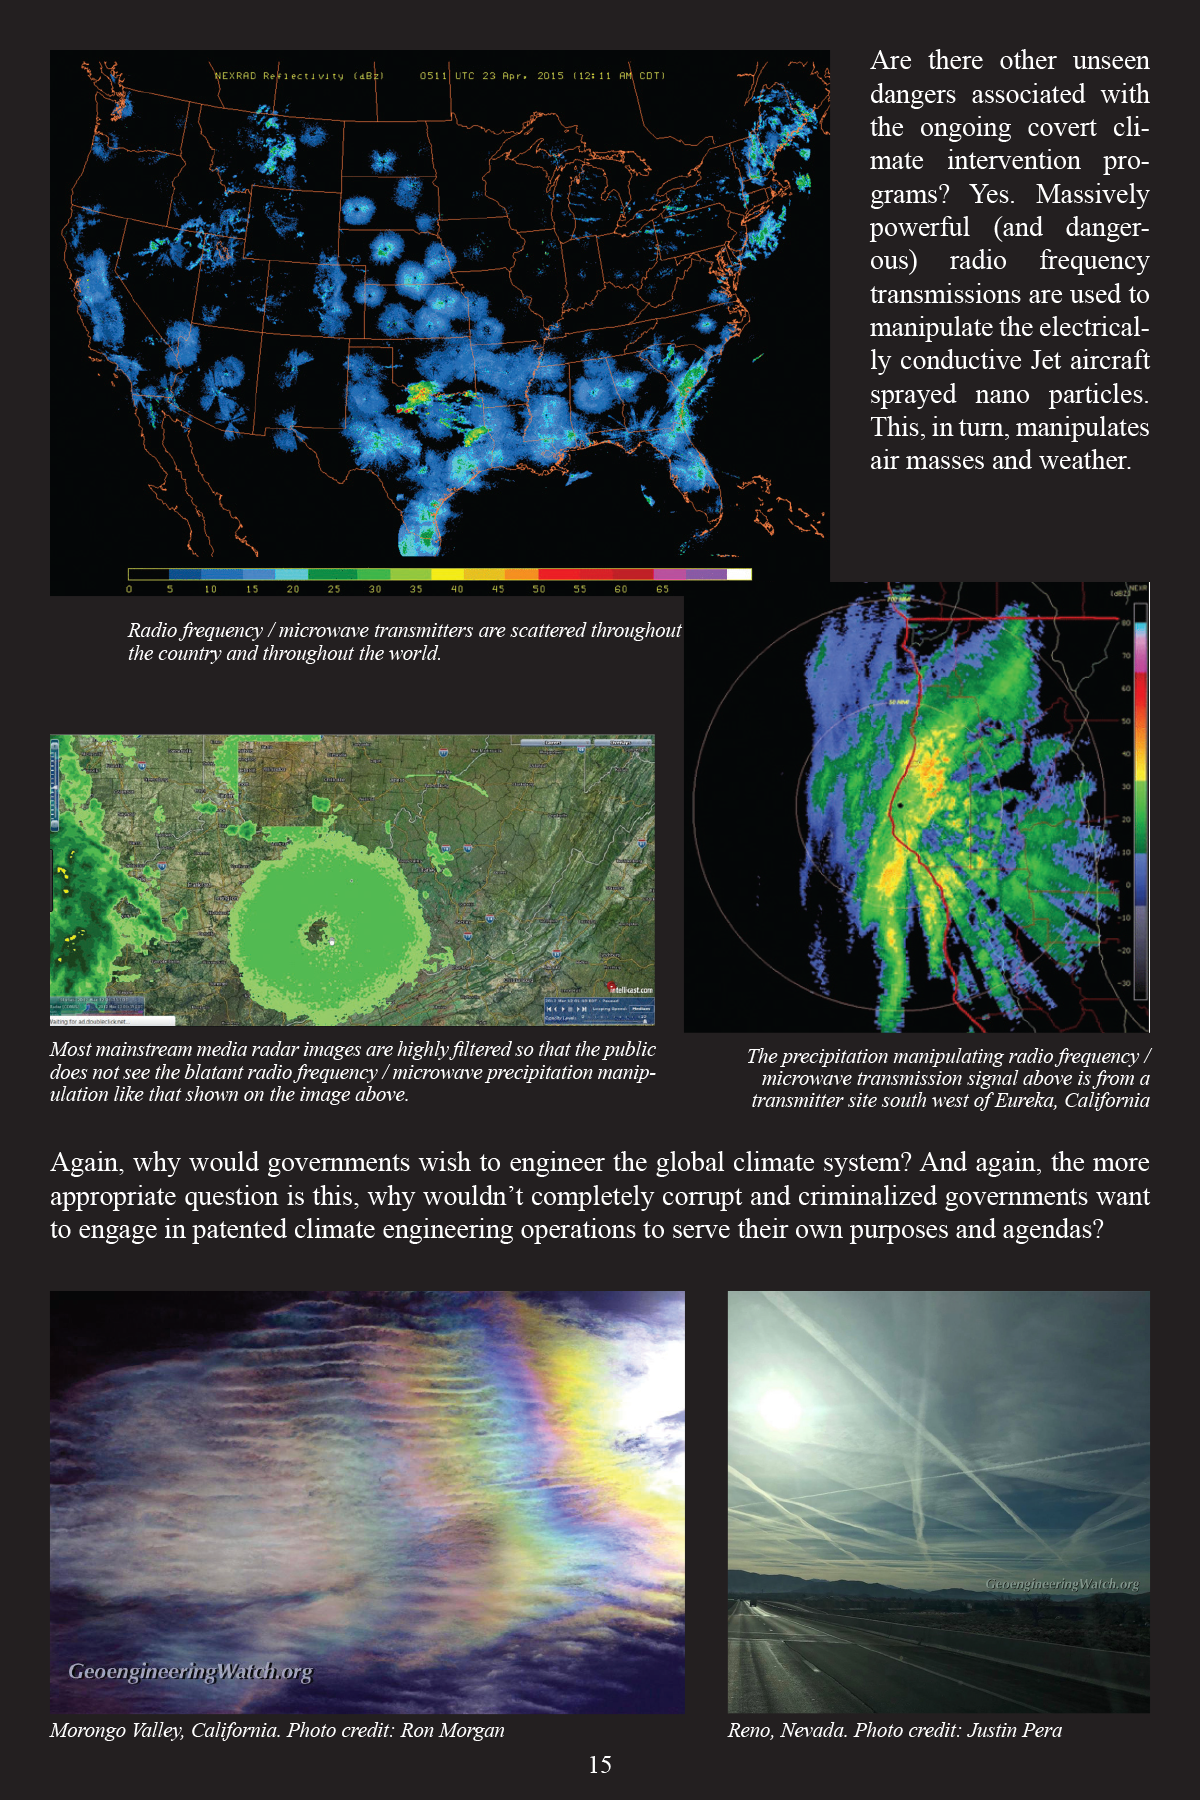 Climate Engineering Fact And Photo Summary - page 15